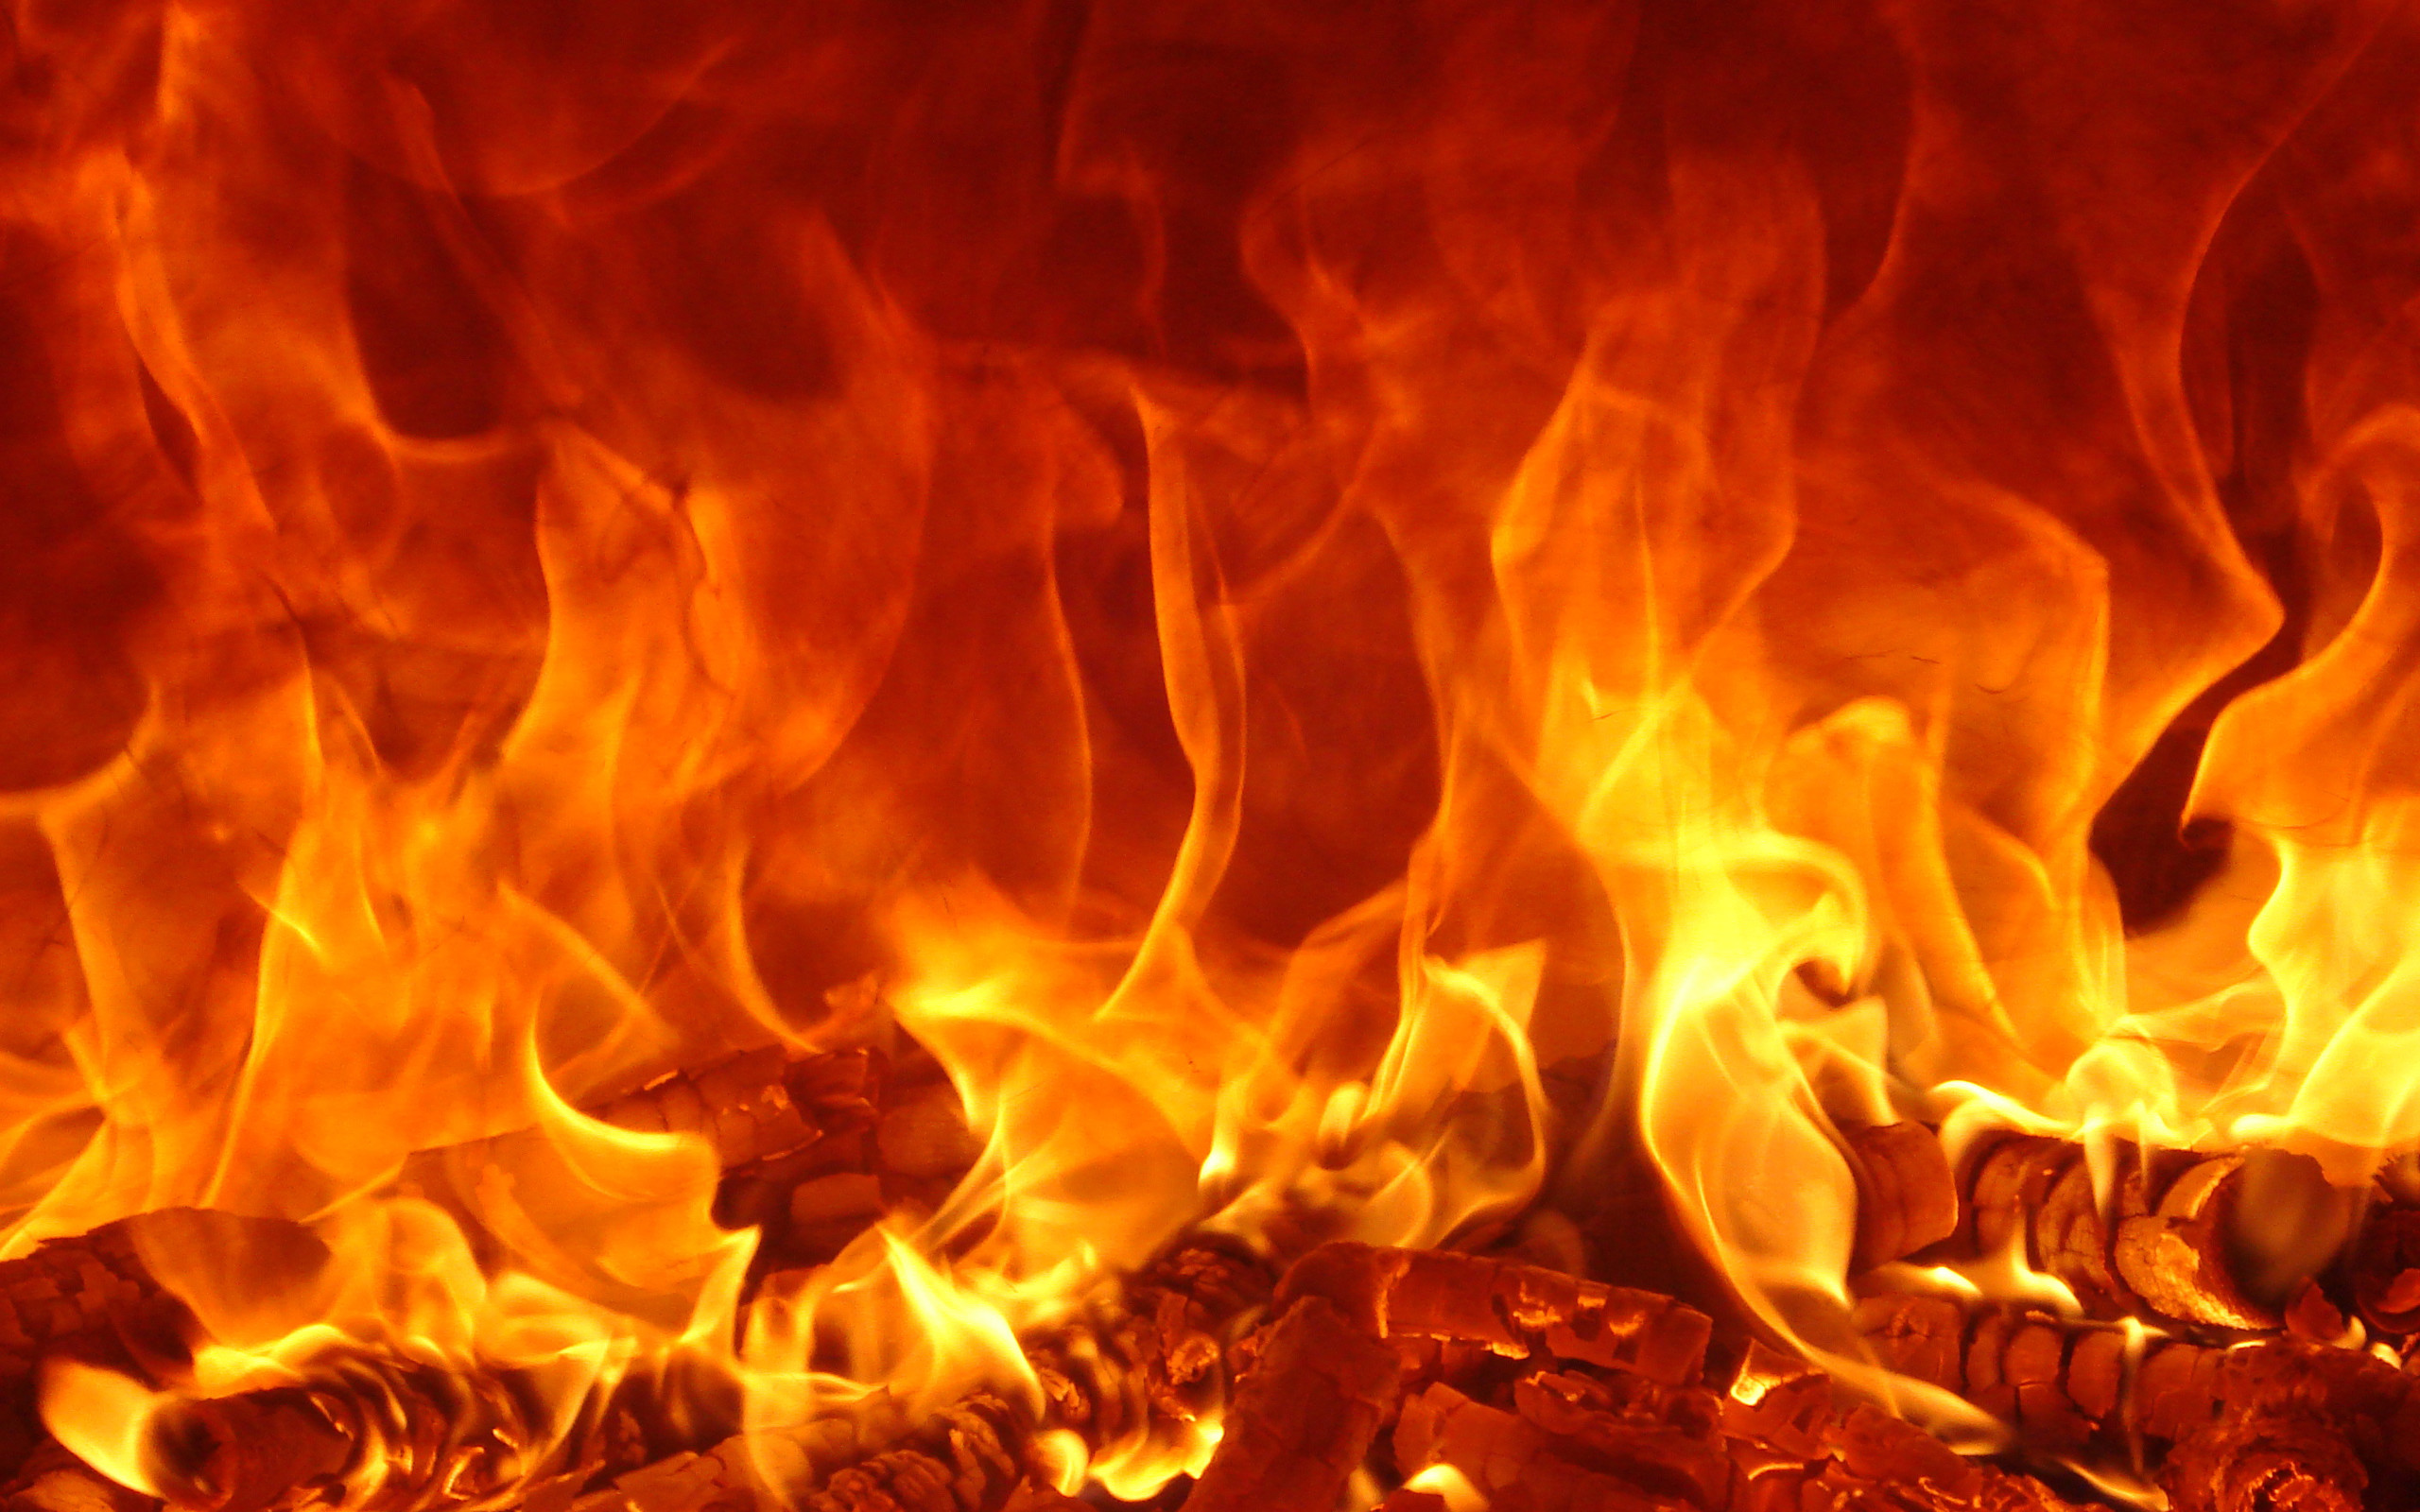 Fire Design HD Wide 2560x1600